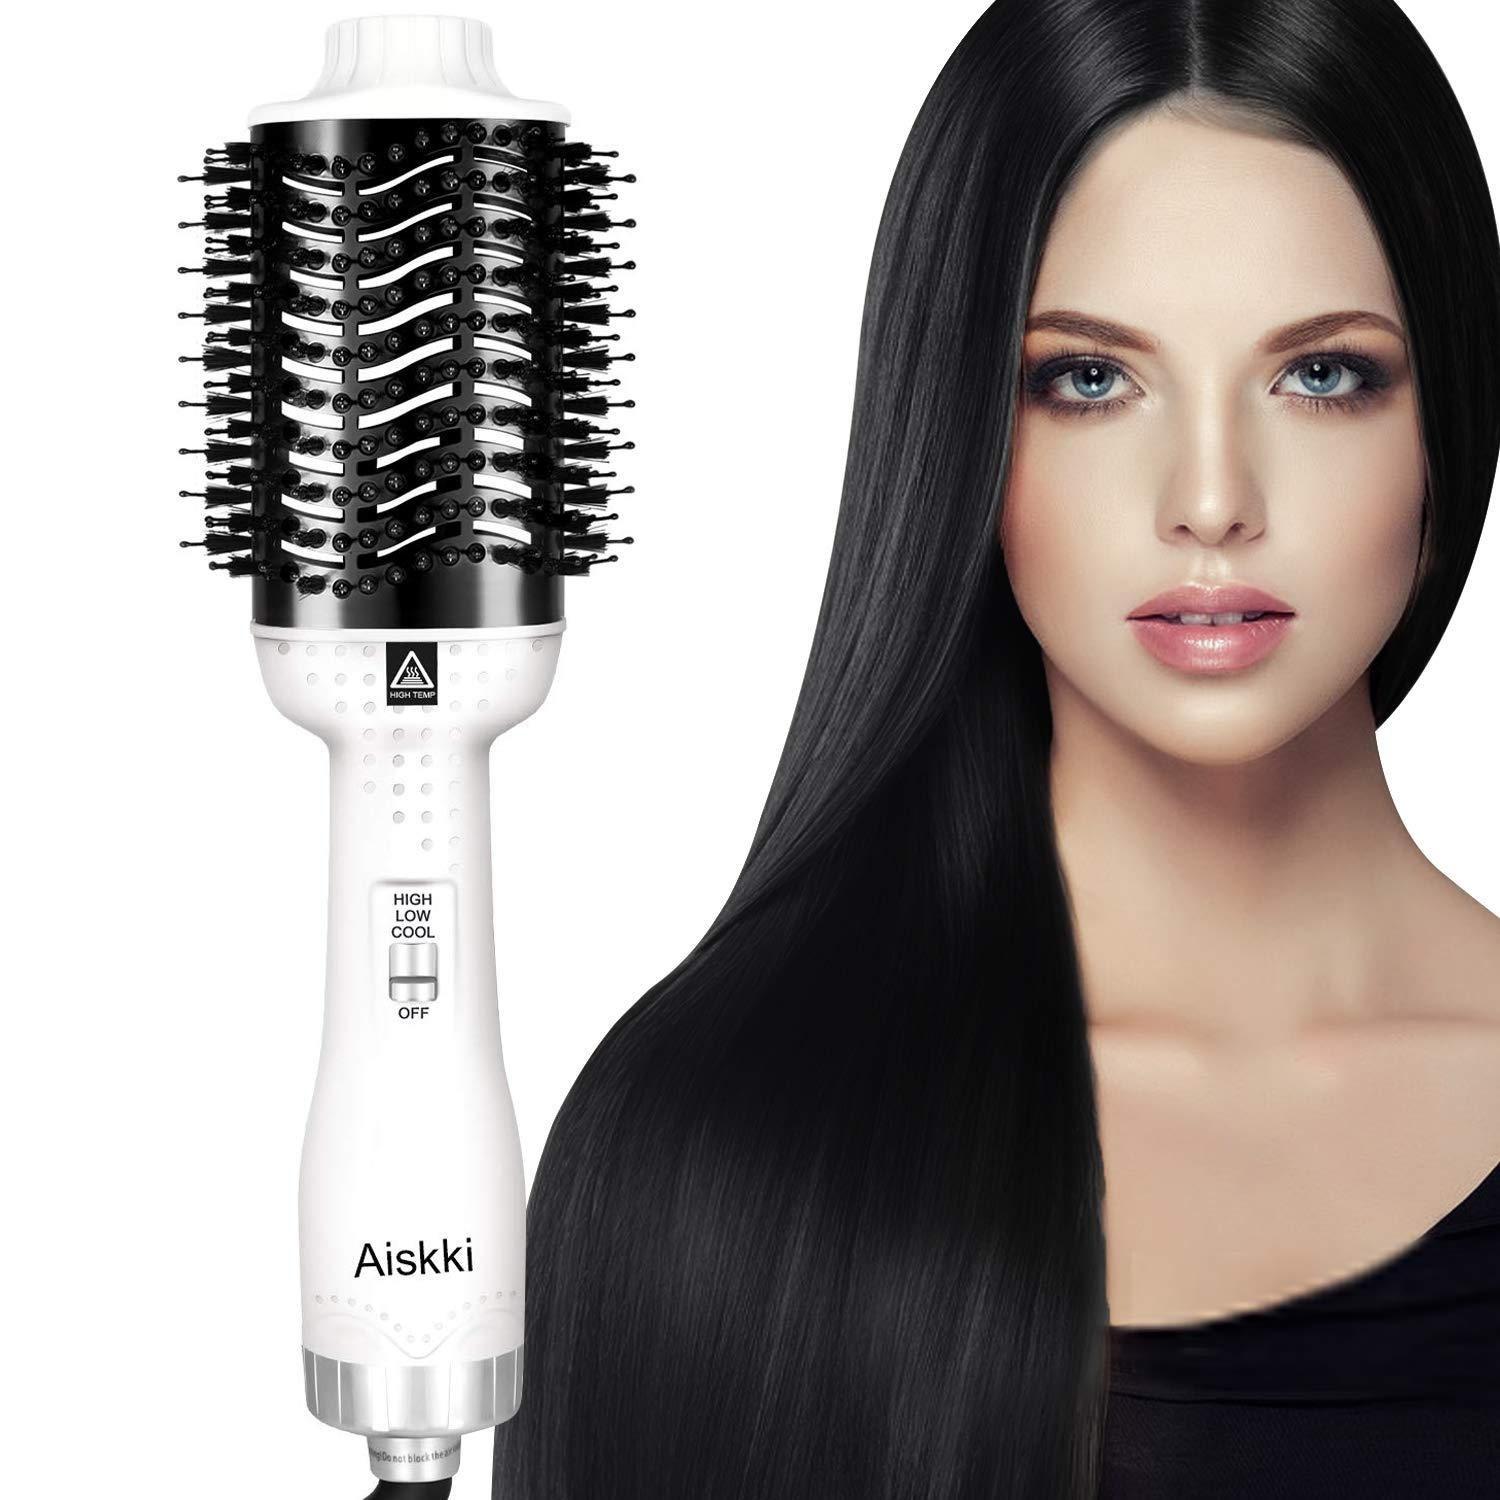 Aiskki Hot Air Brush, 5 in1 One-Step Hair Dryer And Volumizer,Multifunctional Blow Dryer Brush with Professional Negative Ion,Portable Anti-Frizz Hair Dryers Styler Brush Maker for All Hairs